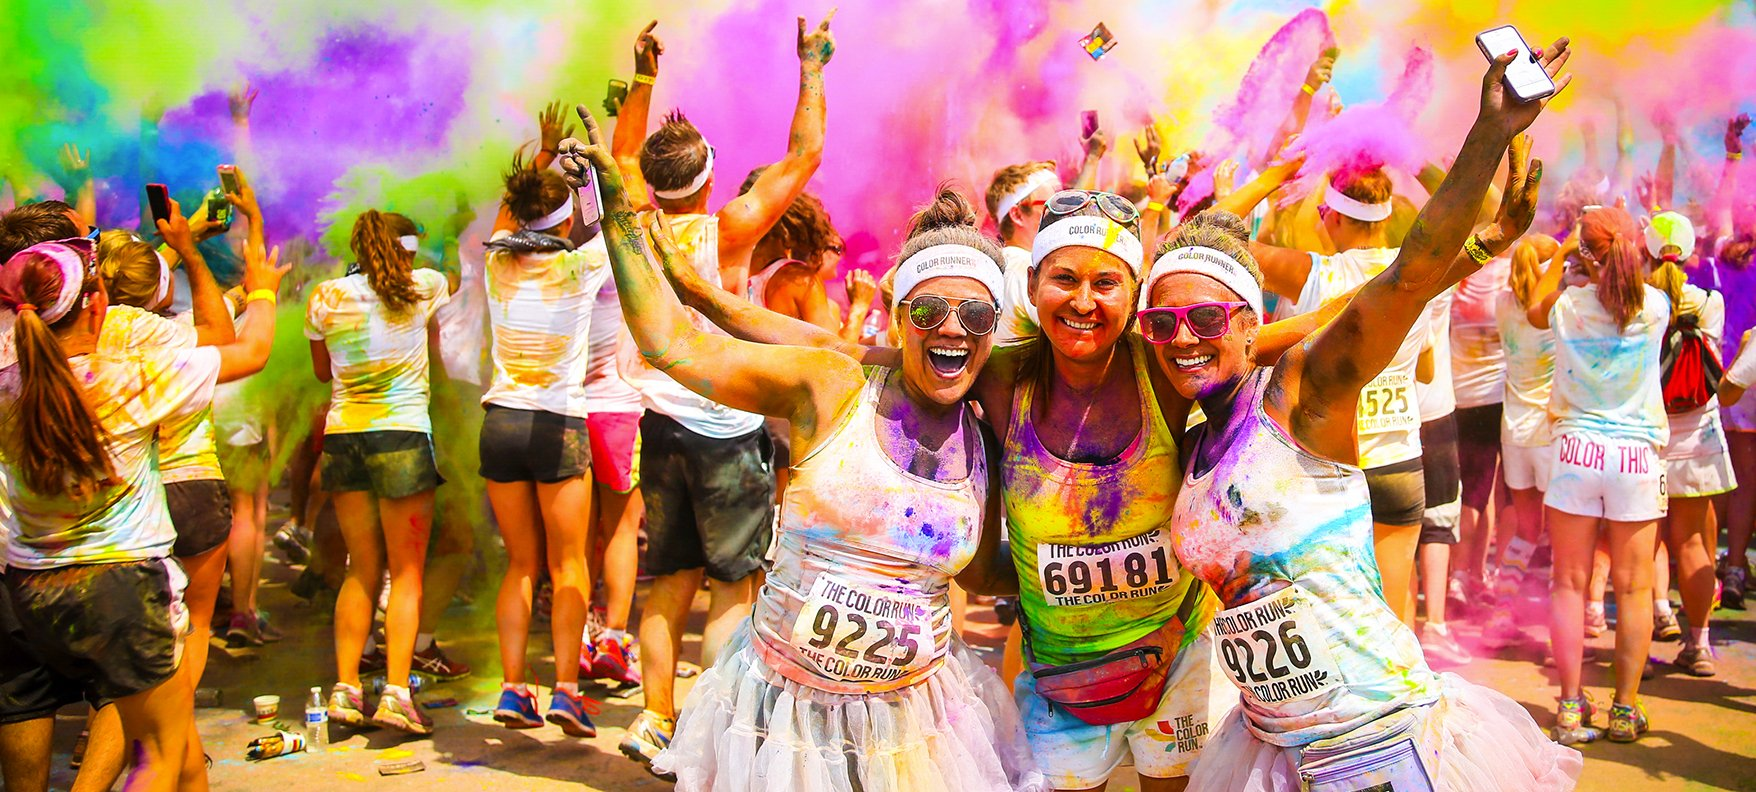 color run clothing ideas